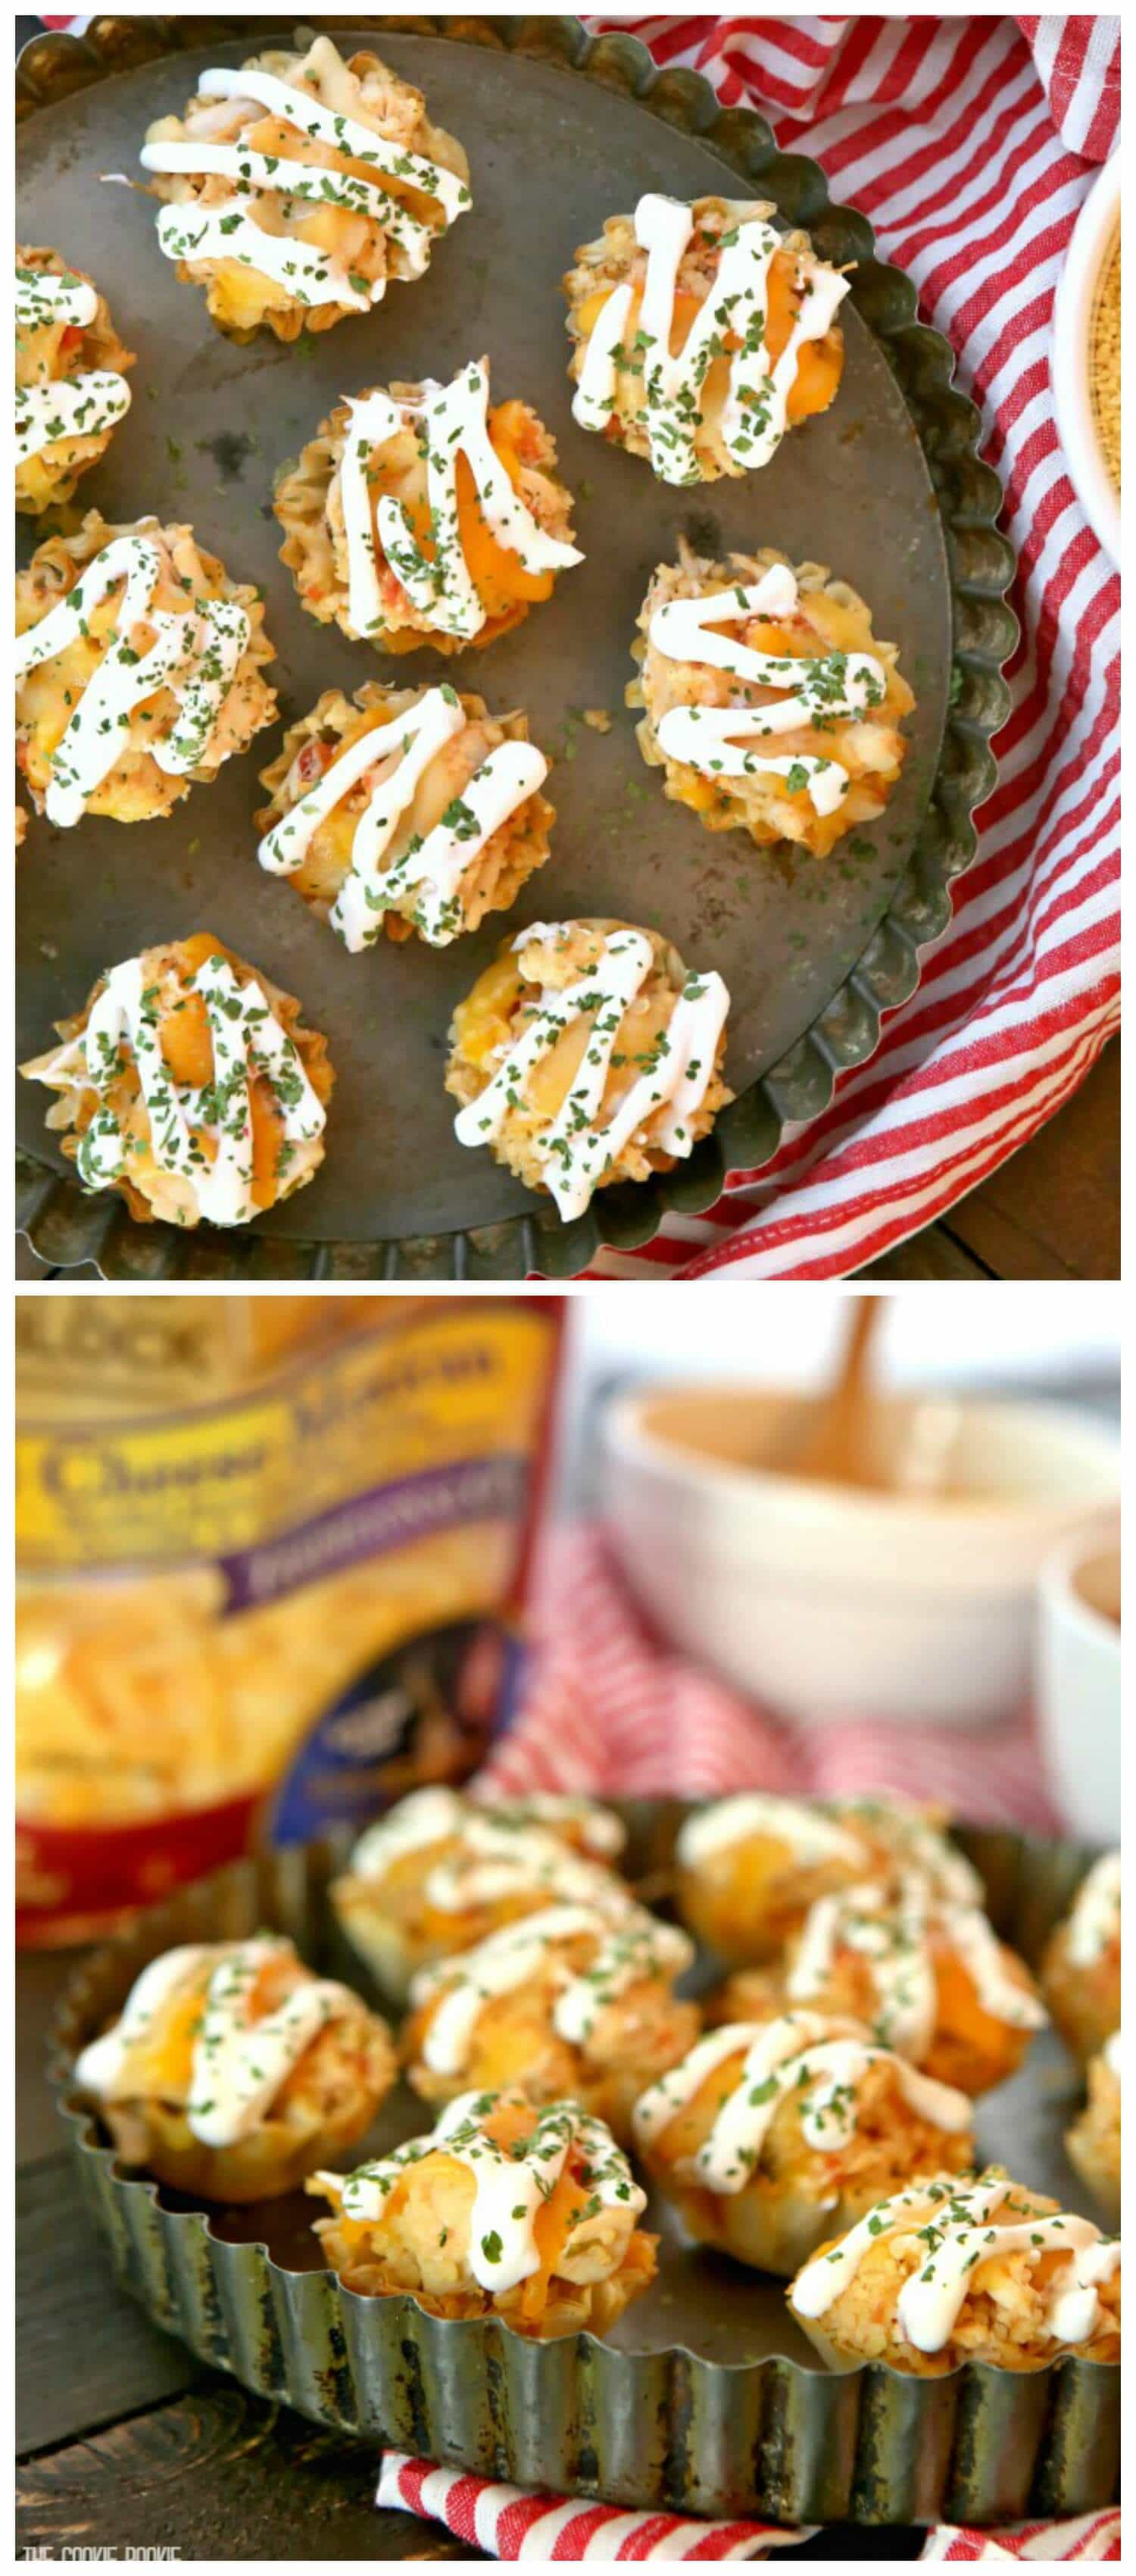 Santa Fe Chicken Bites made with couscous, salsa, chicken, and cheese. Simple bite sized appetizer perfect for any occasion!